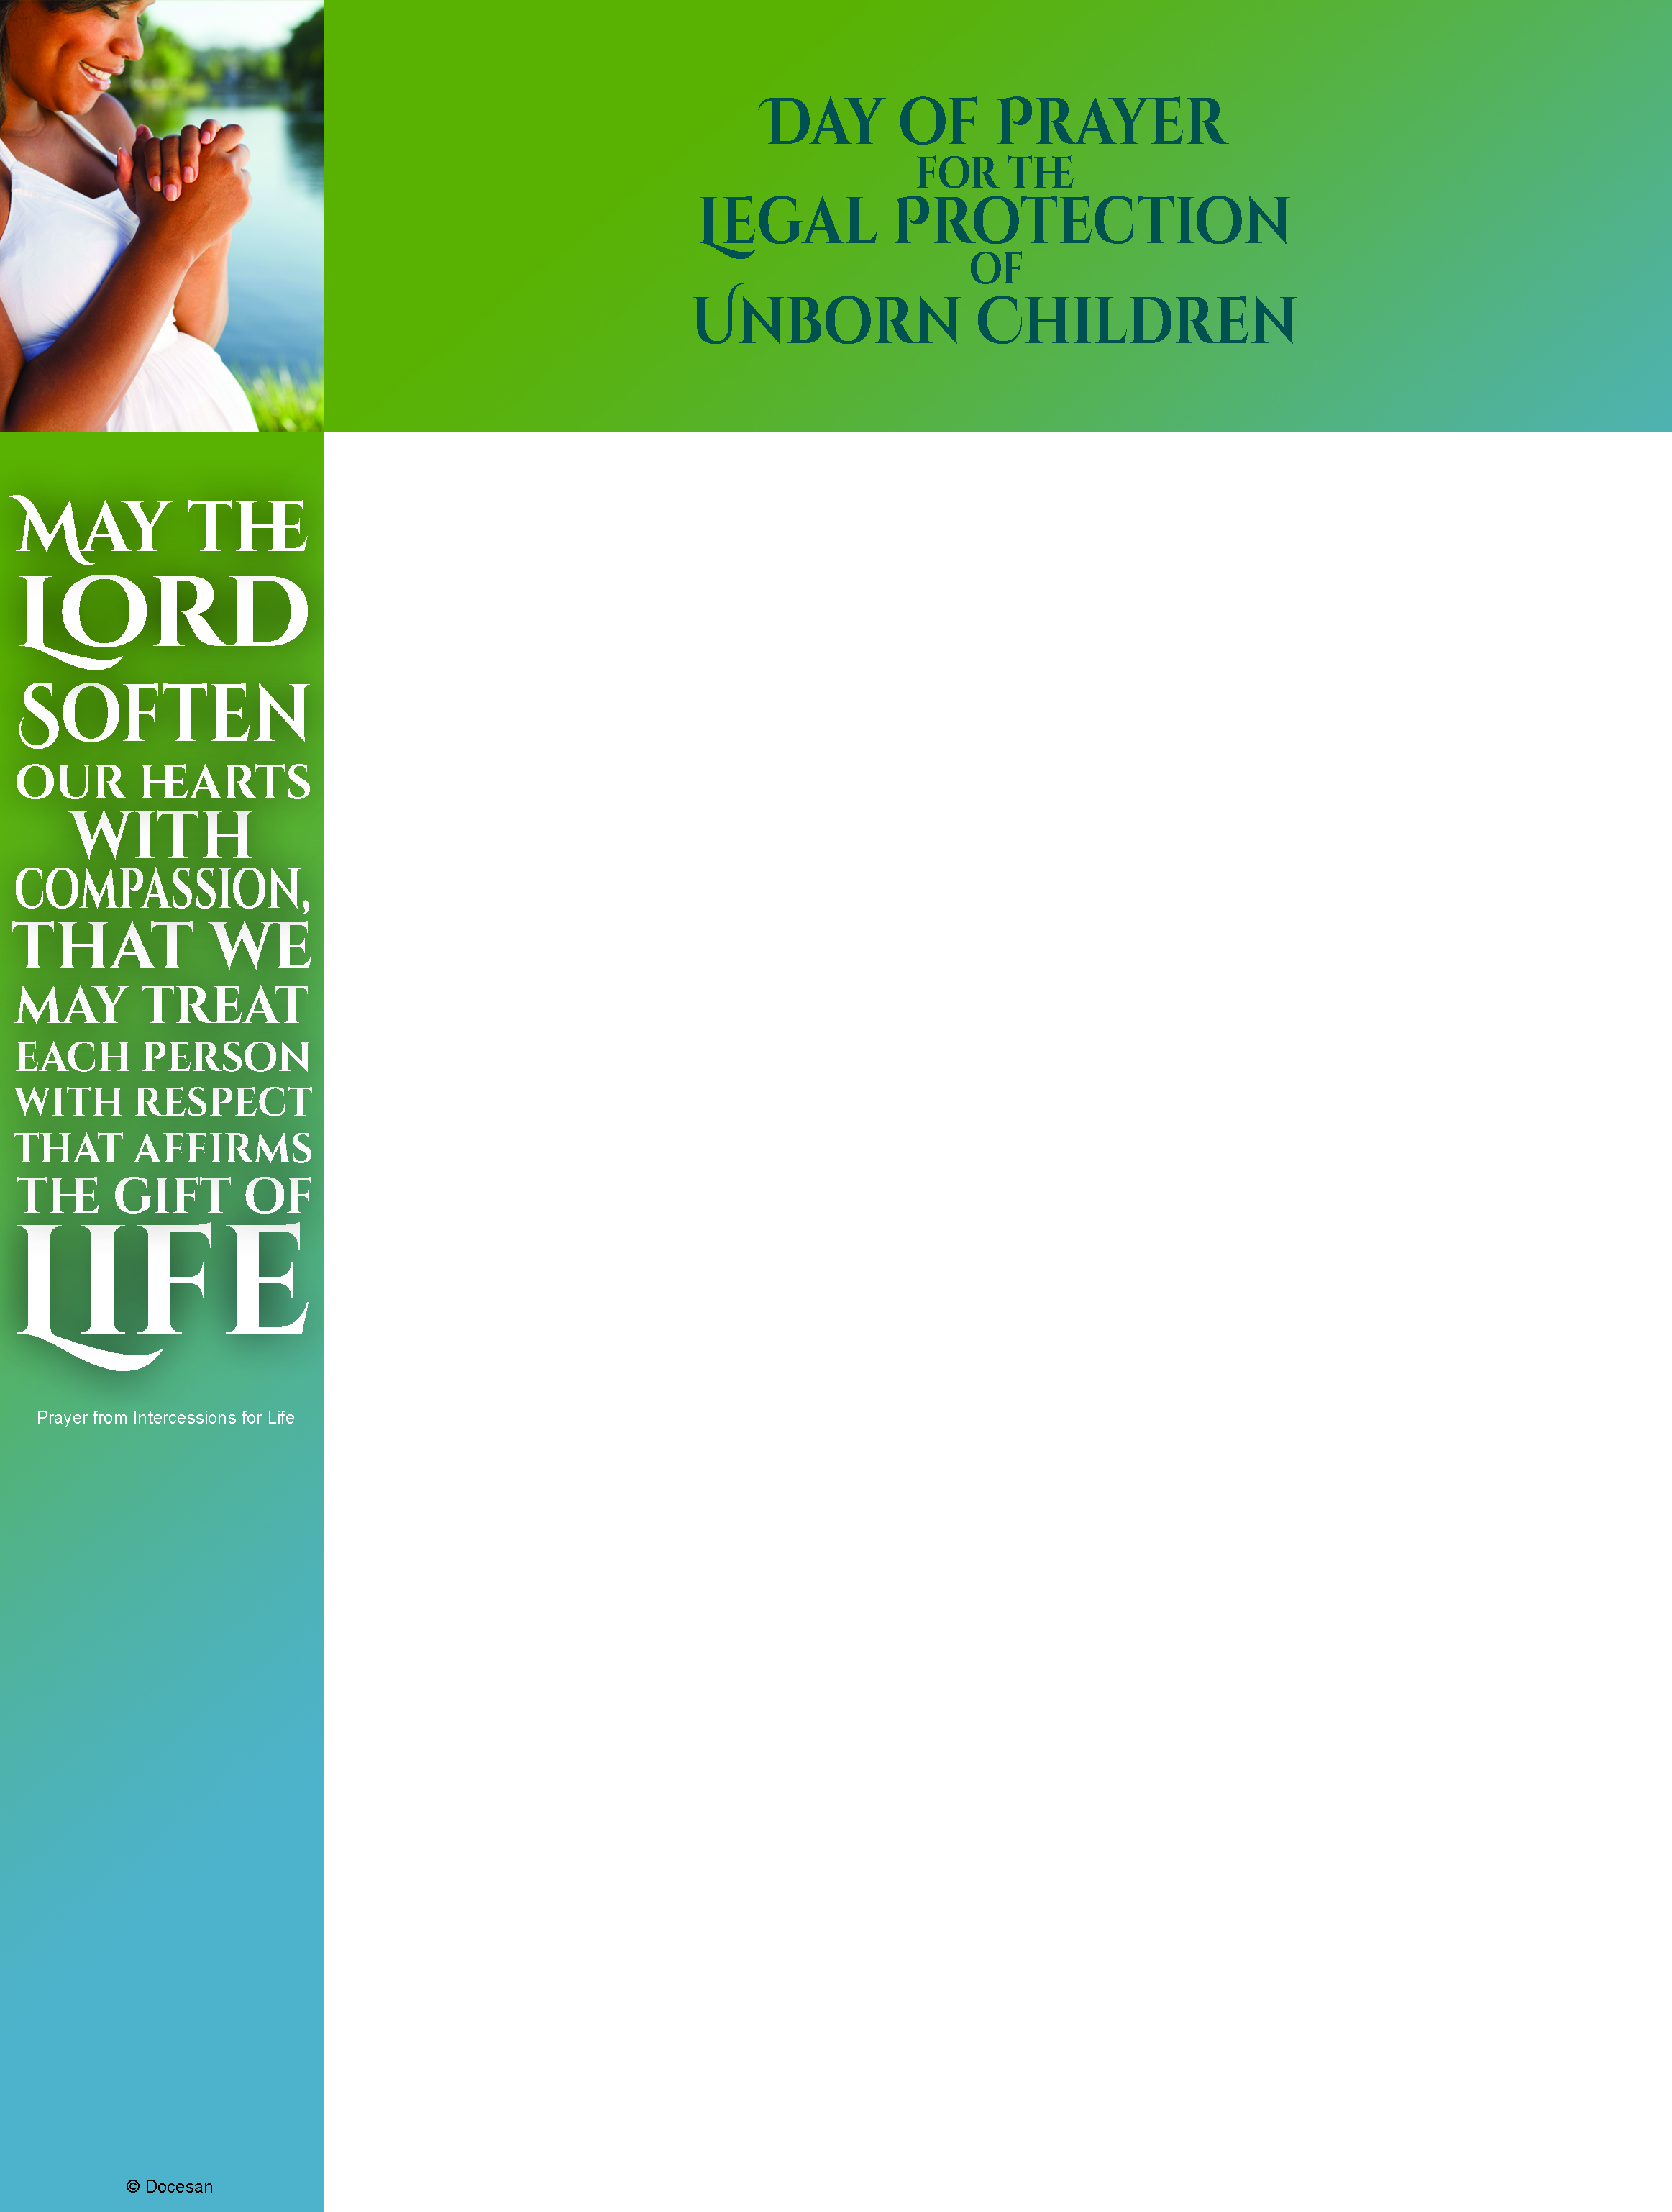 Prayer for Protection of Unborn - Wrapper